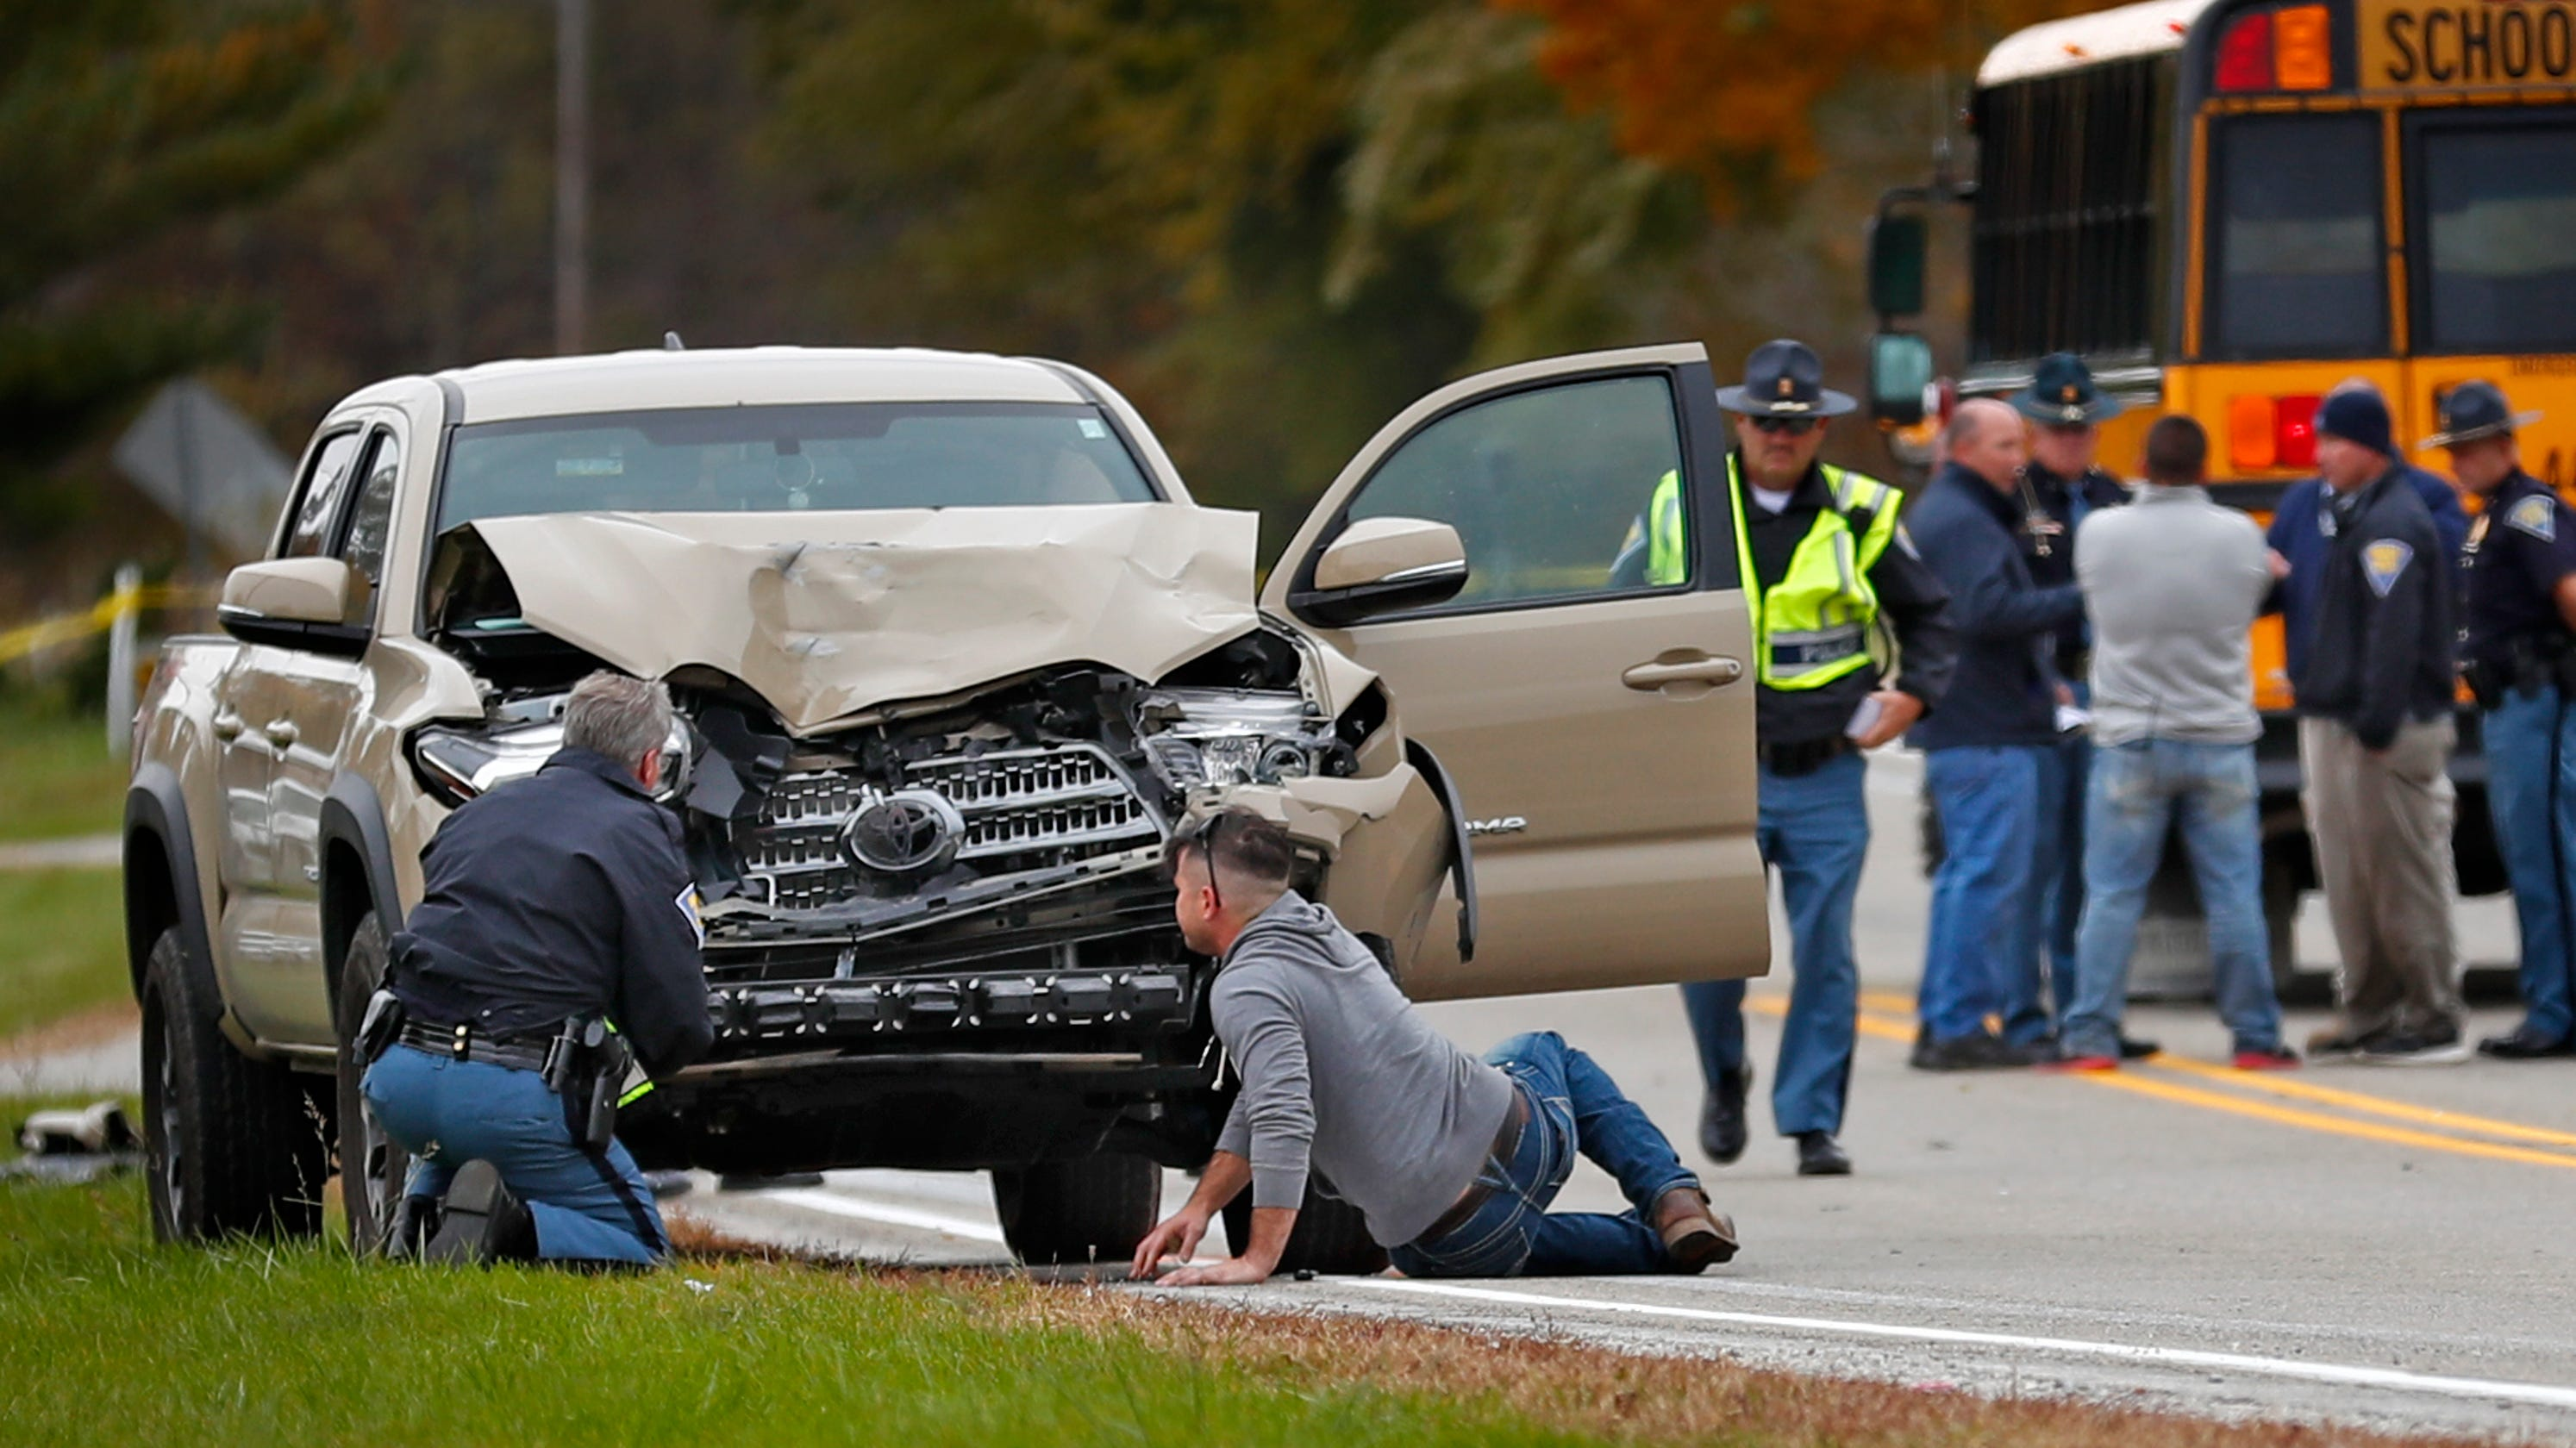 What we know about the Indiana bus accident